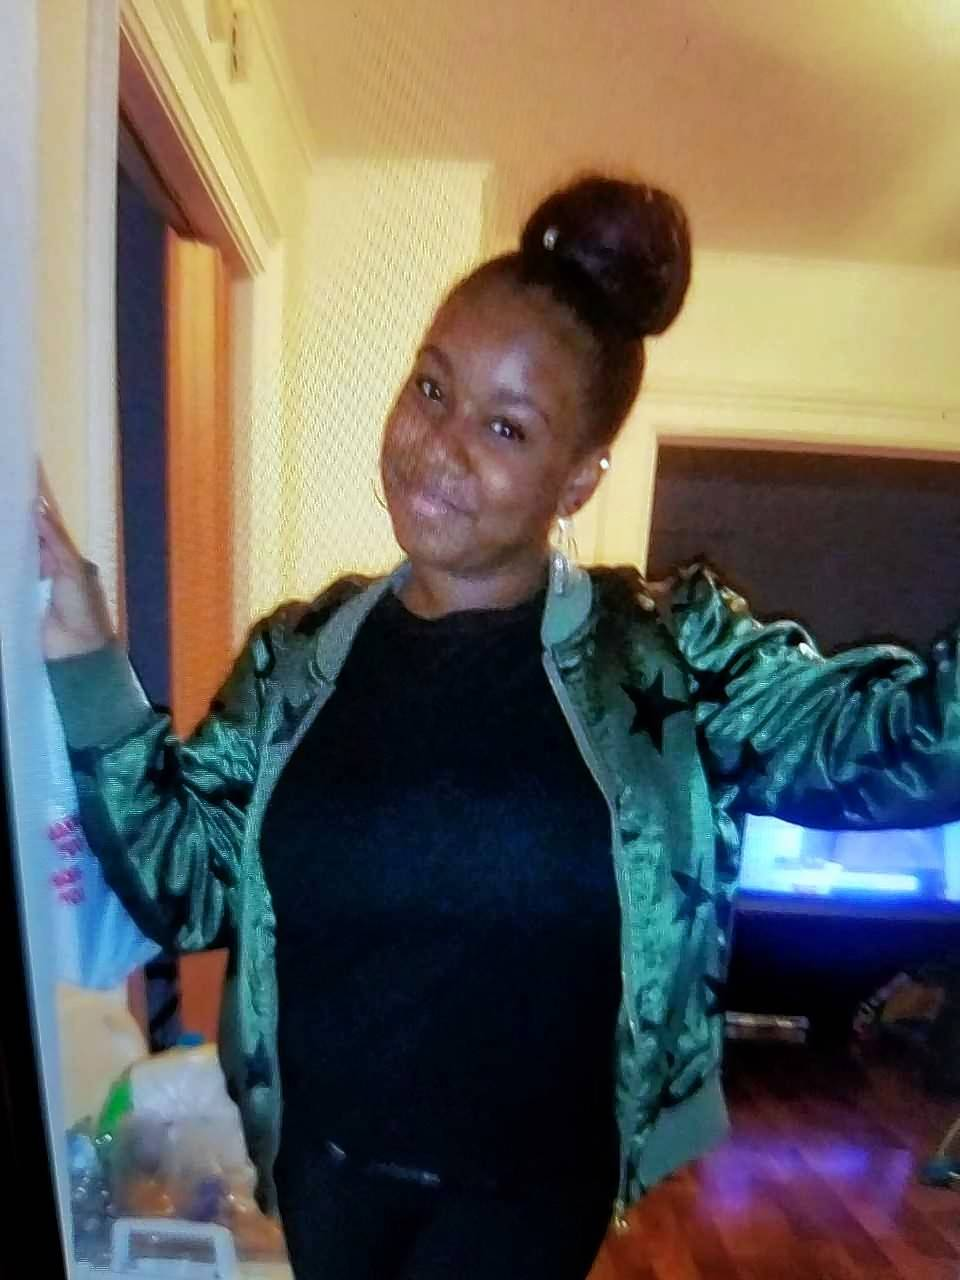 Aurora police are searching for Tia Chante Motley who has been missing since Sept. 7.